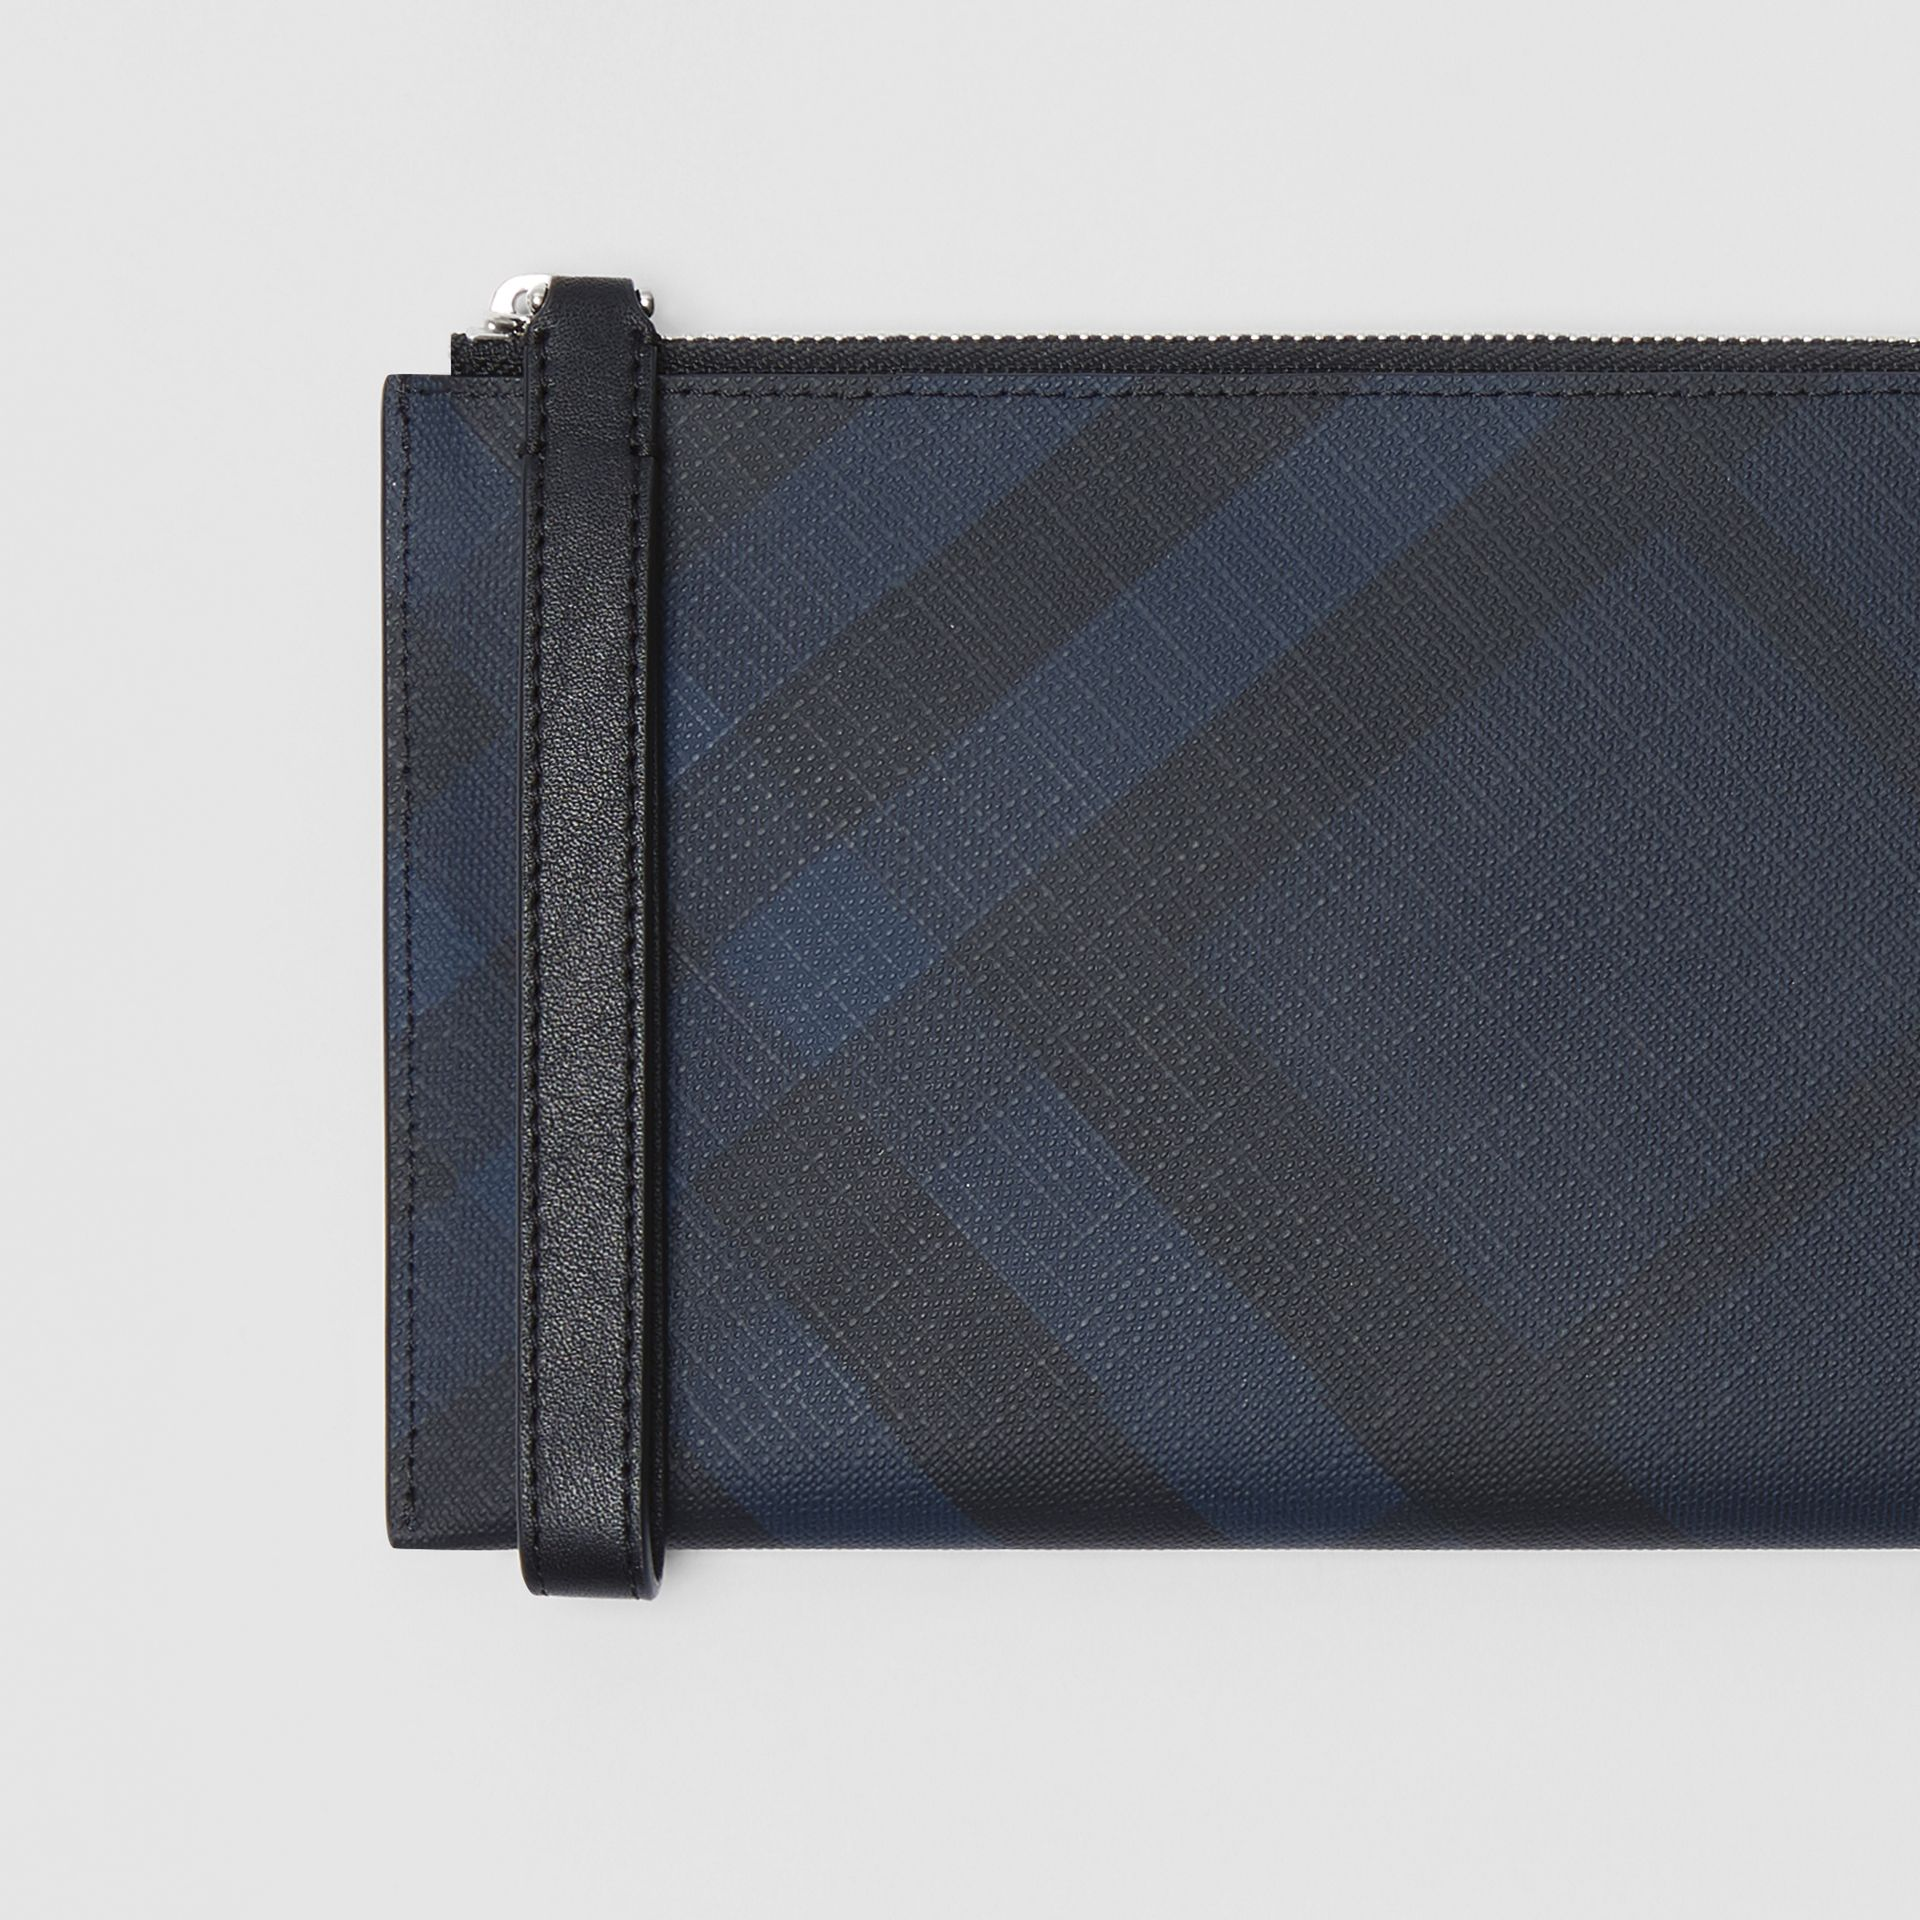 London Check and Leather Travel Wallet in Navy/black - Men | Burberry Hong Kong S.A.R - gallery image 1